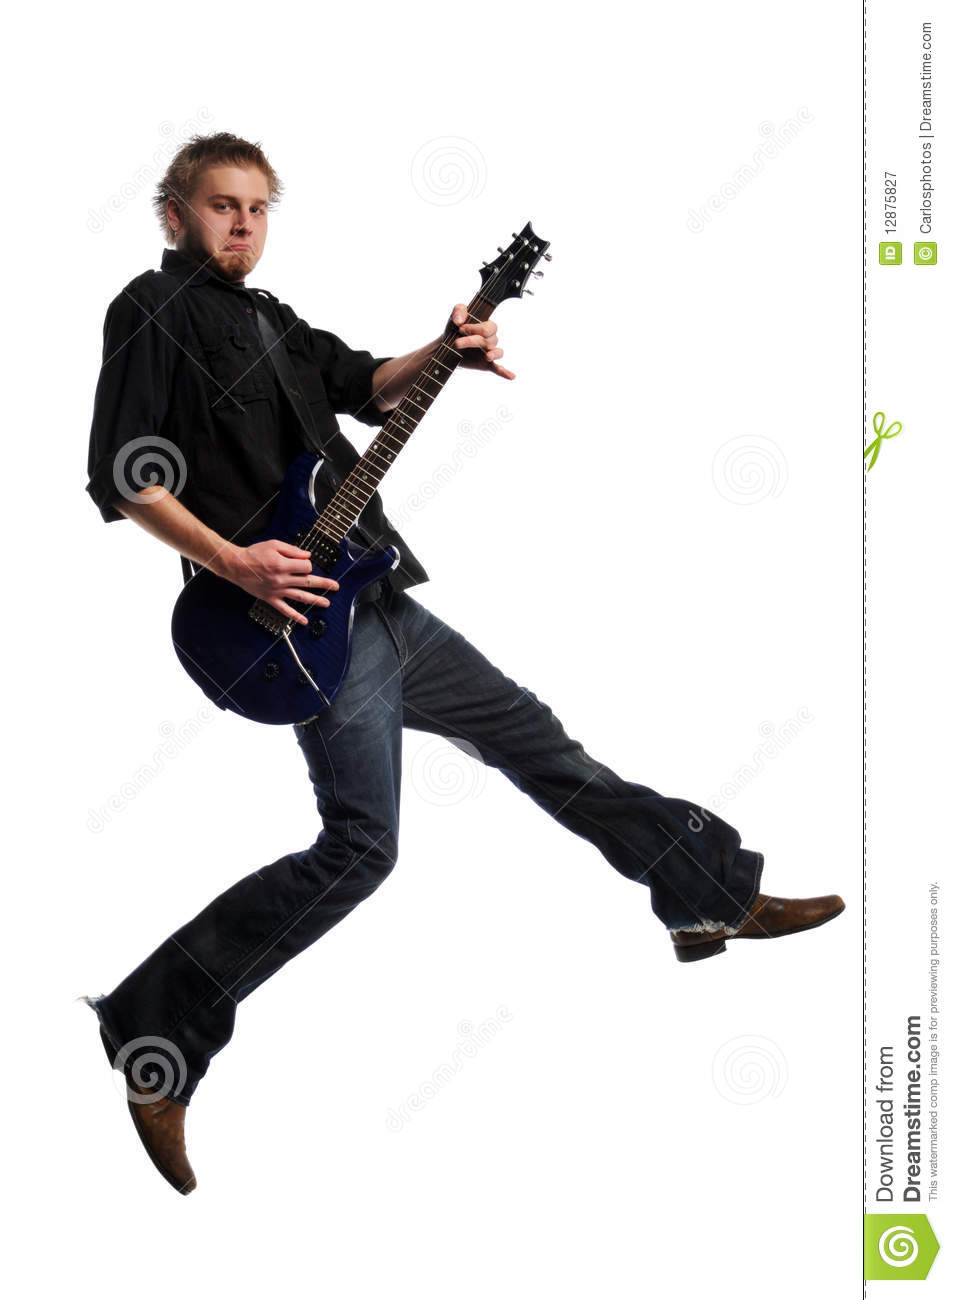 Musician Playing The Guitar And Jumping Isolated On A White Background